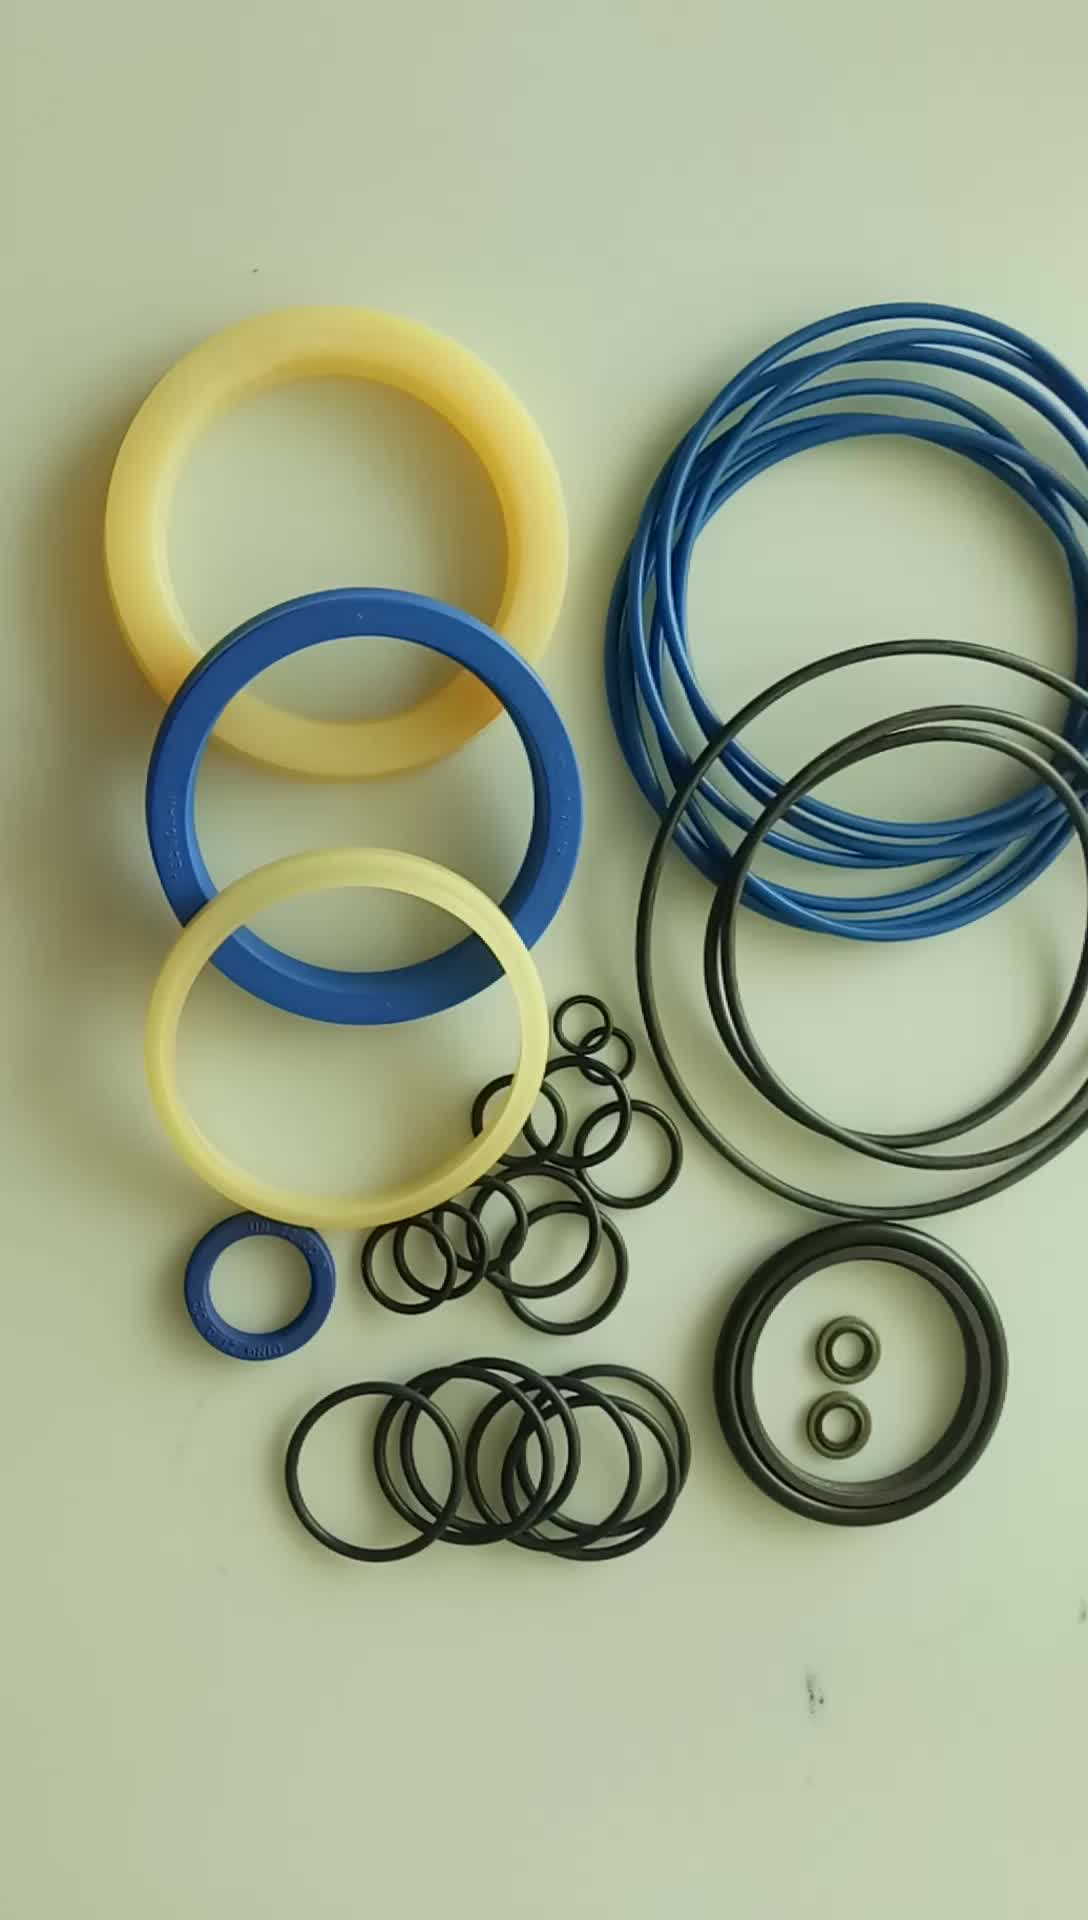 RAMMER Hydraulic Breaker Hammer Seal kit For RAMMER Hydraulic repair kit